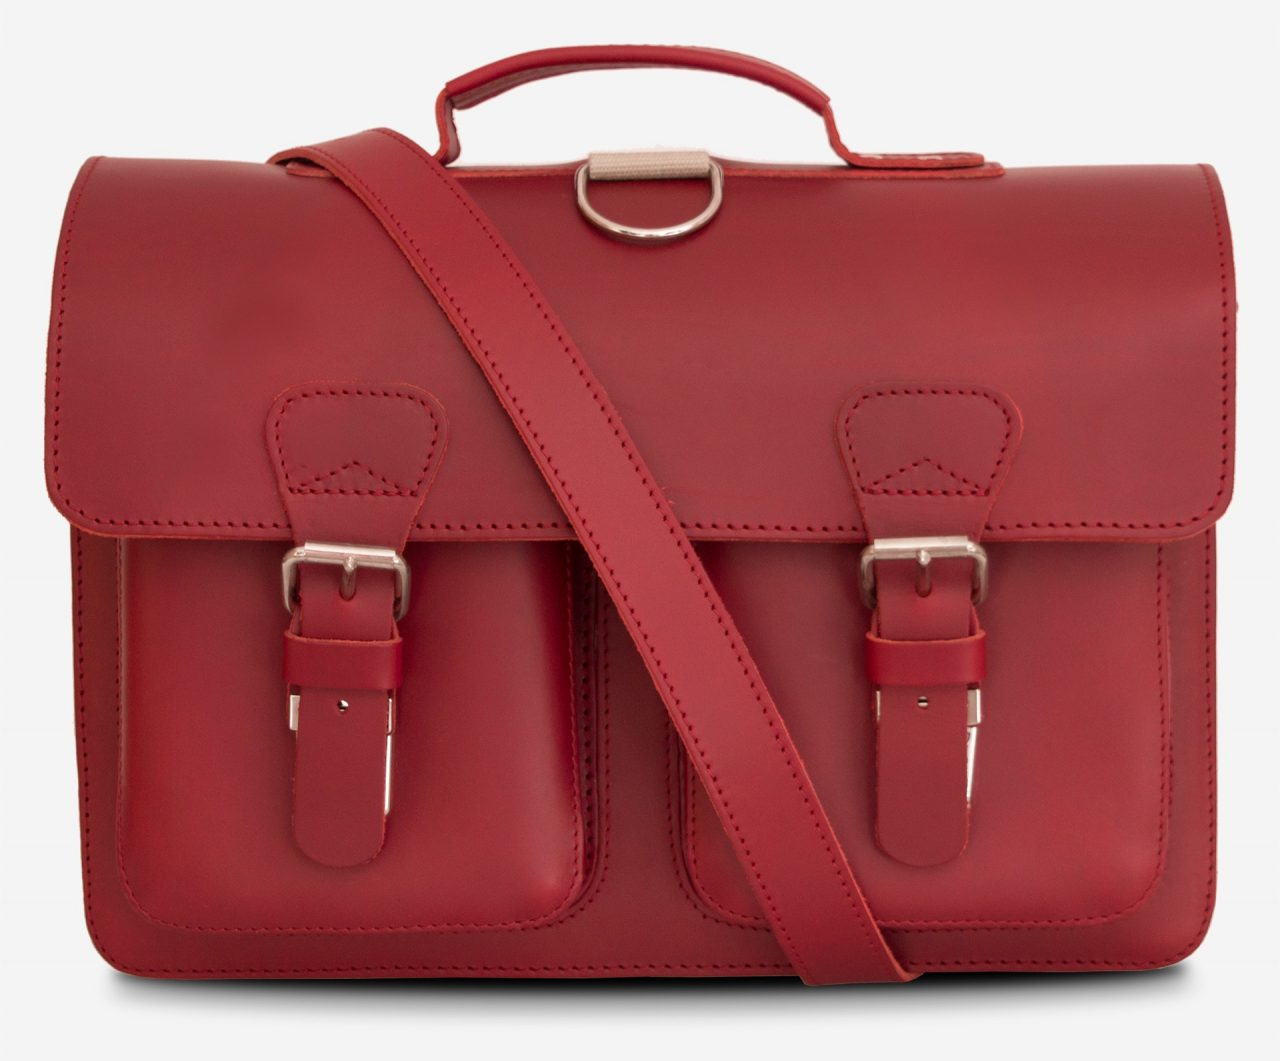 Front view of red leather satchel backpack with 2 gussets and symmetric front pockets for women - 152233.